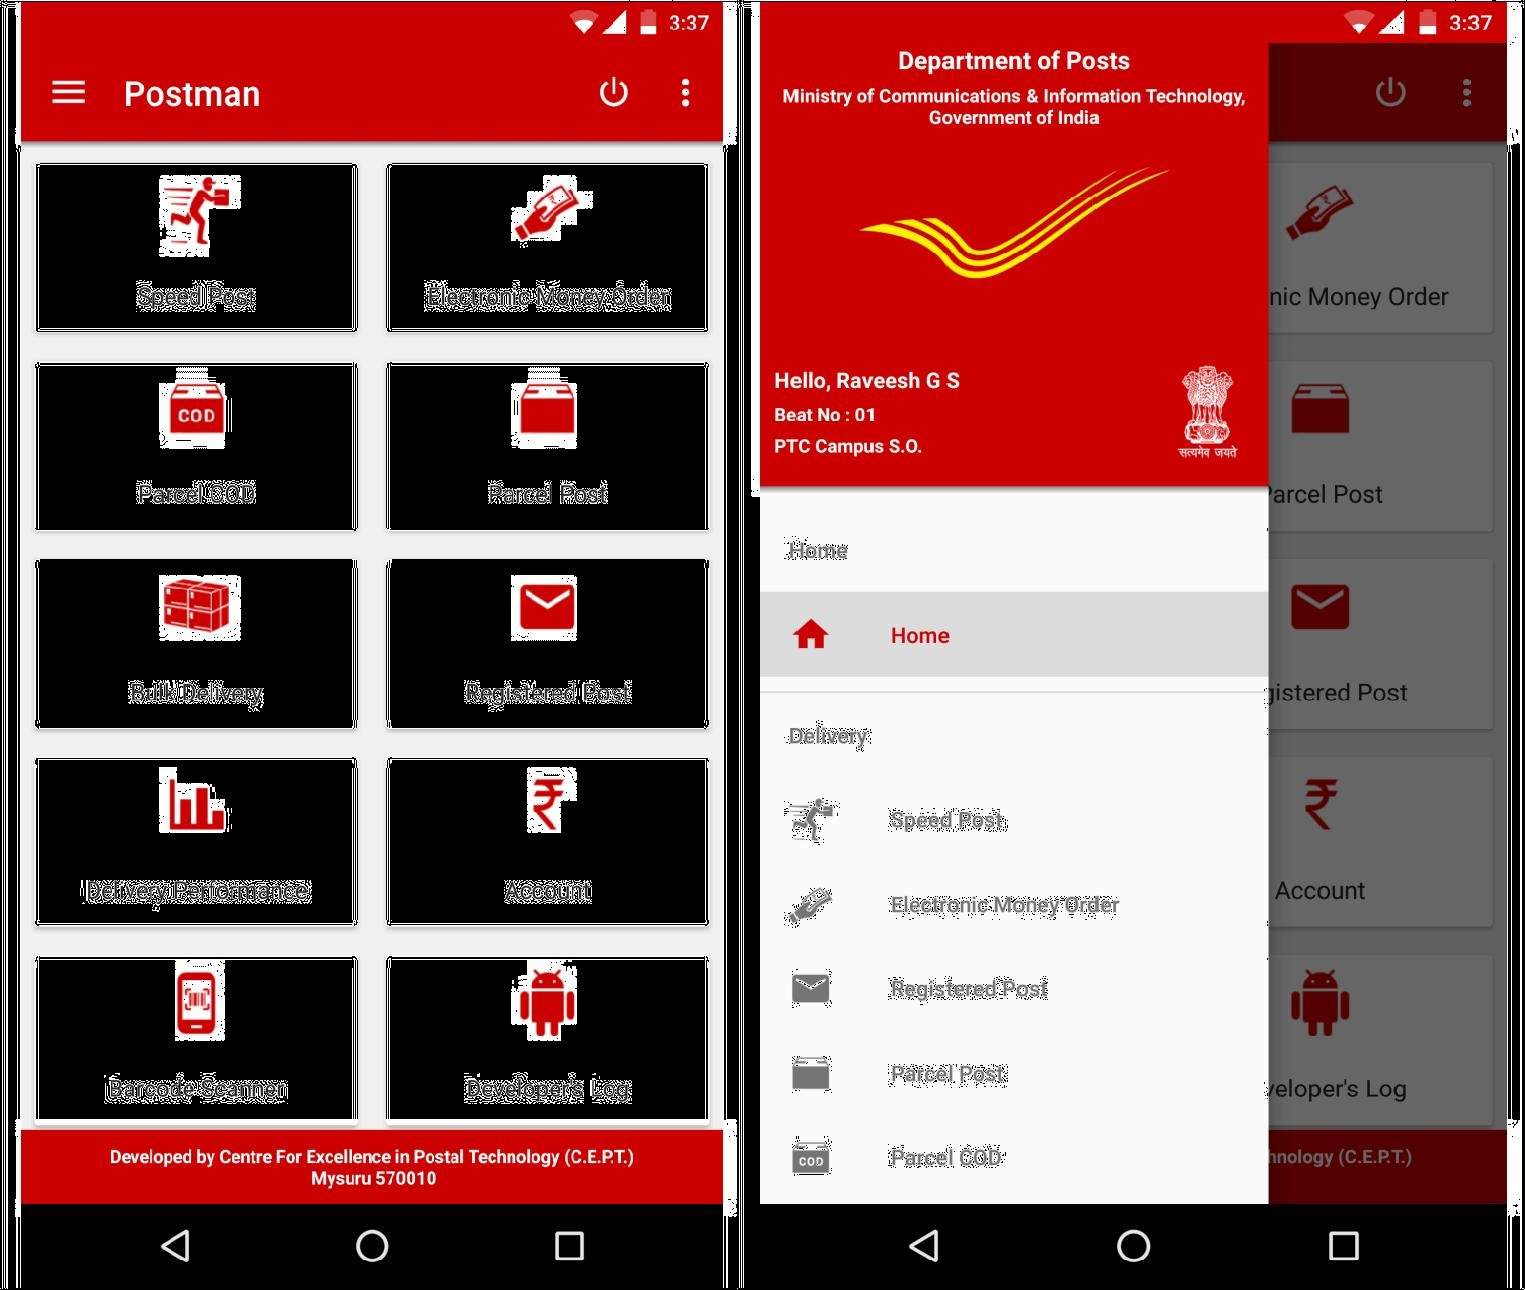 SOP - Postman Mobile Application-Android - Computer tips and tricks